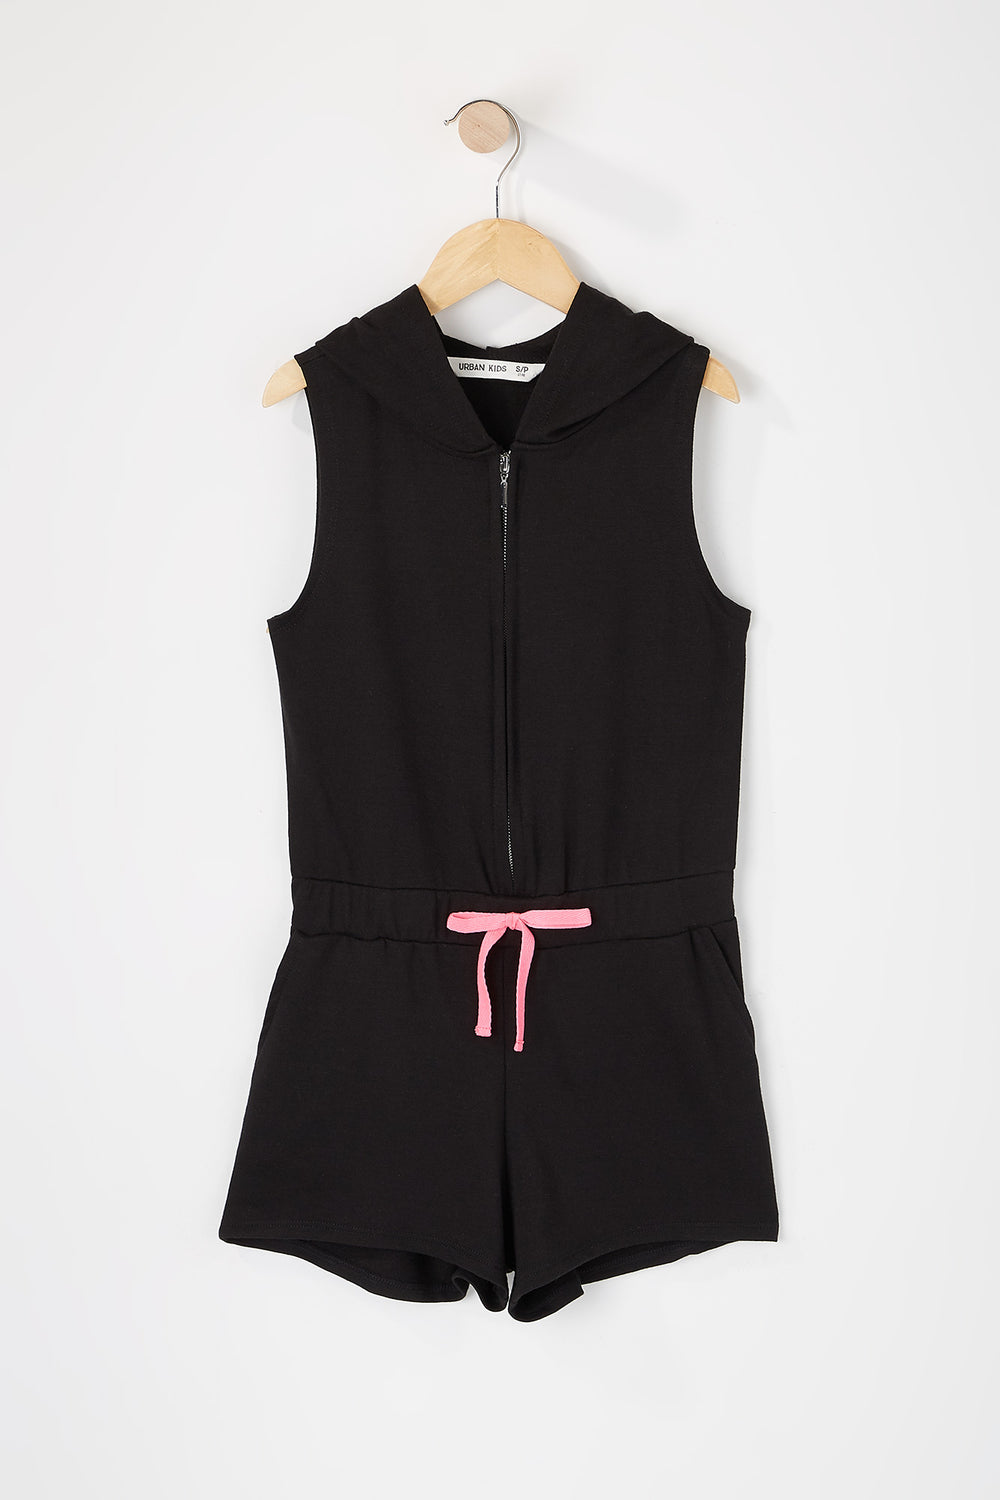 Girls Zip-Up Hooded Romper Black